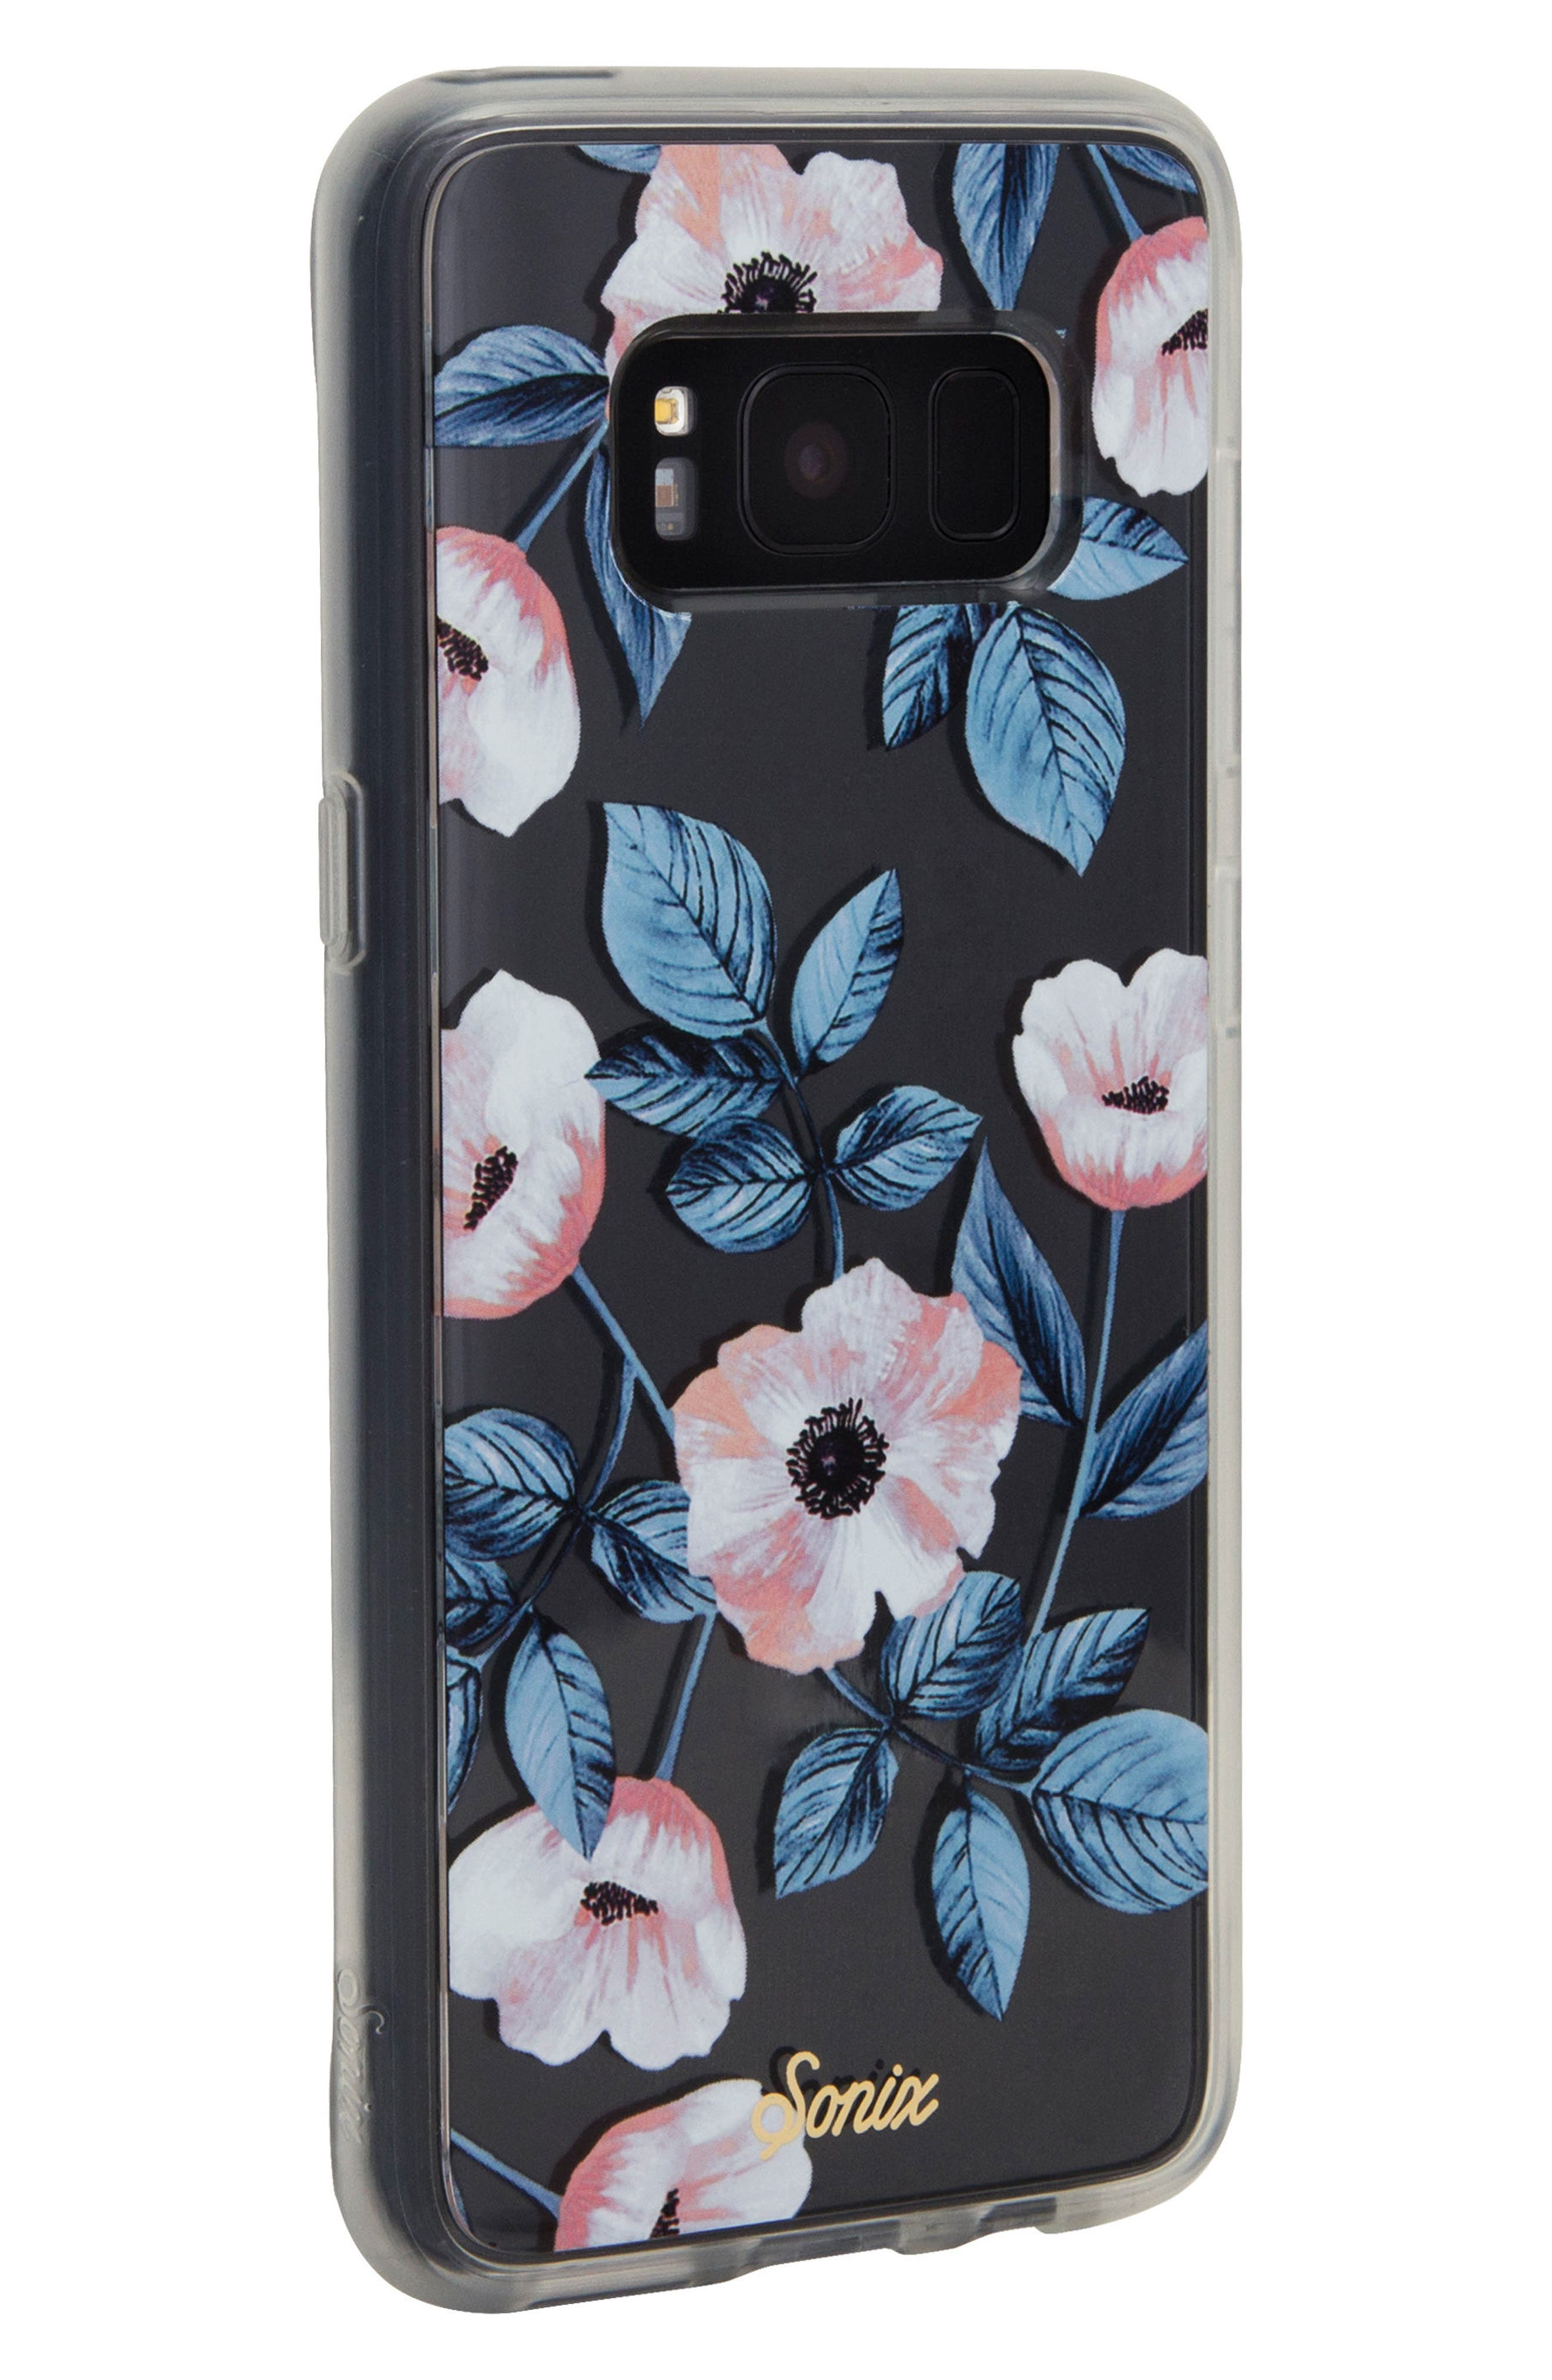 Floral Samsung Galaxy S8 and Galaxy S8 Plus Case,                             Alternate thumbnail 4, color,                             100